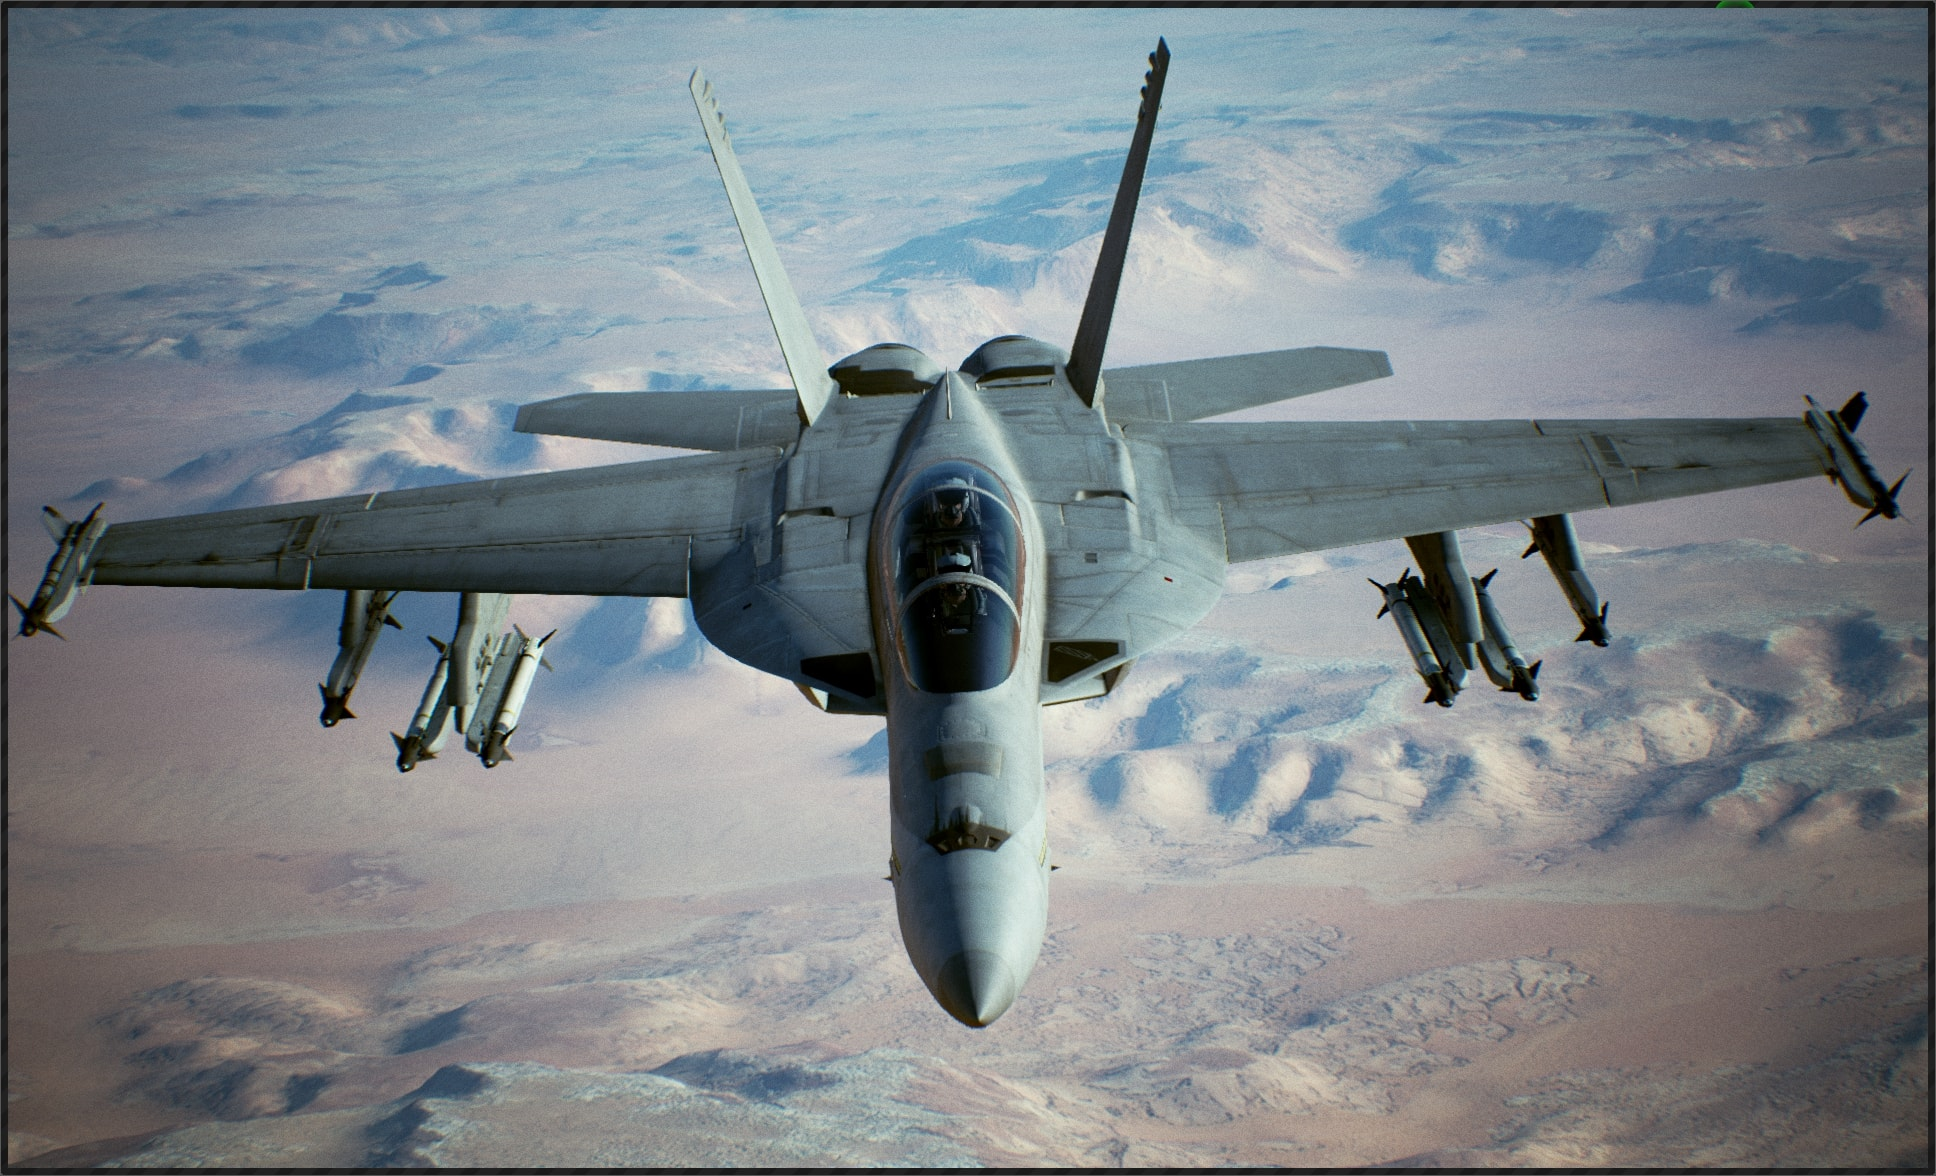 F/A-18F Super Hornet | Acepedia | FANDOM powered by Wikia